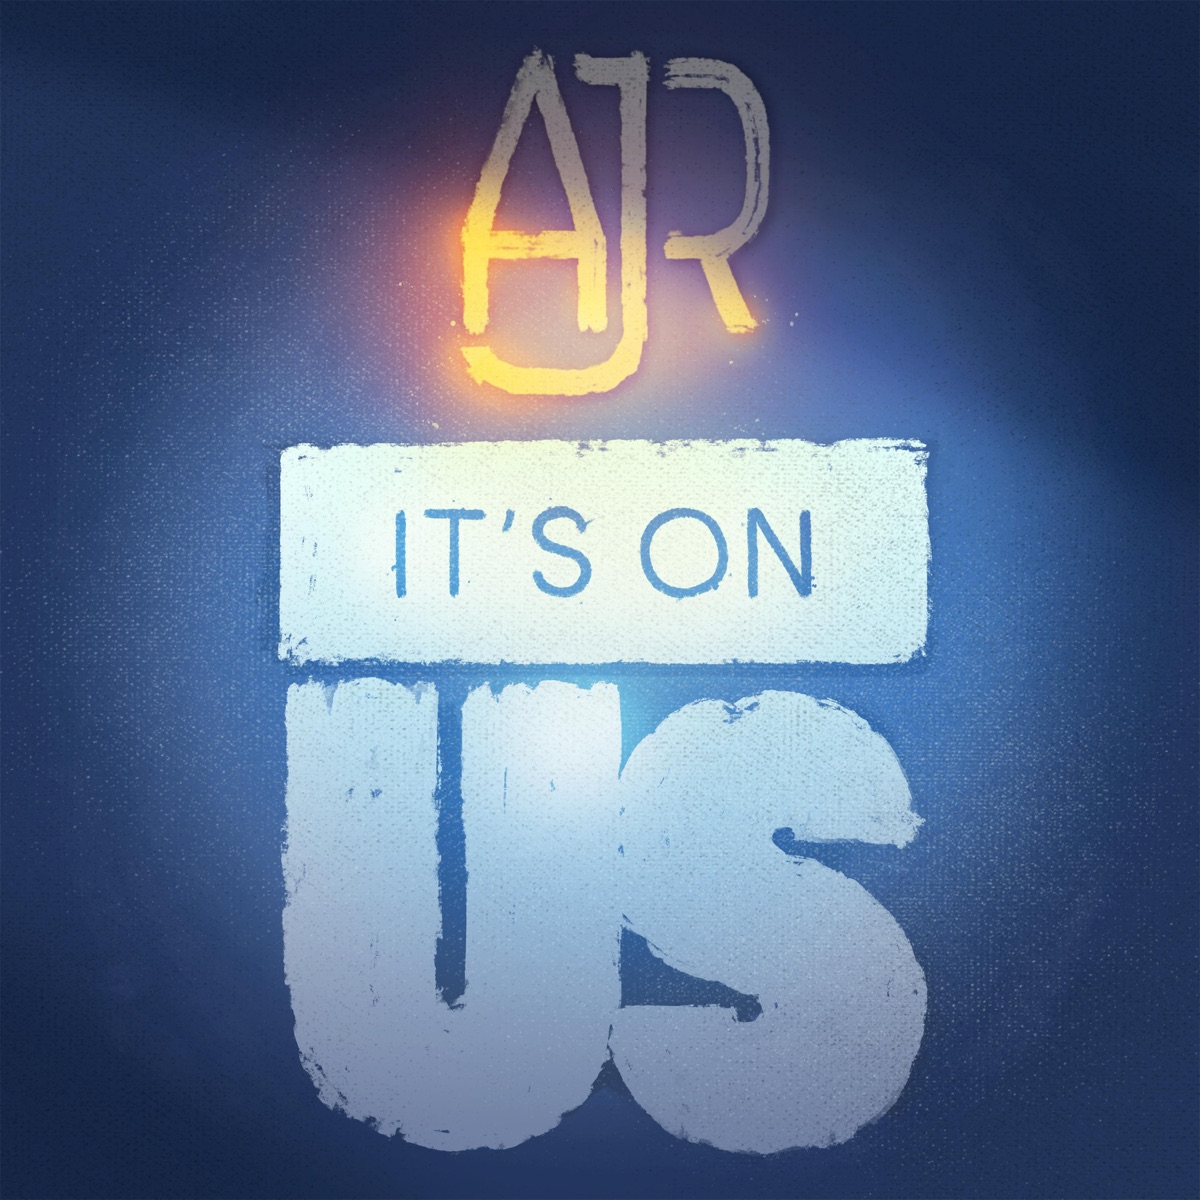 It's On Us Album Cover by AJR